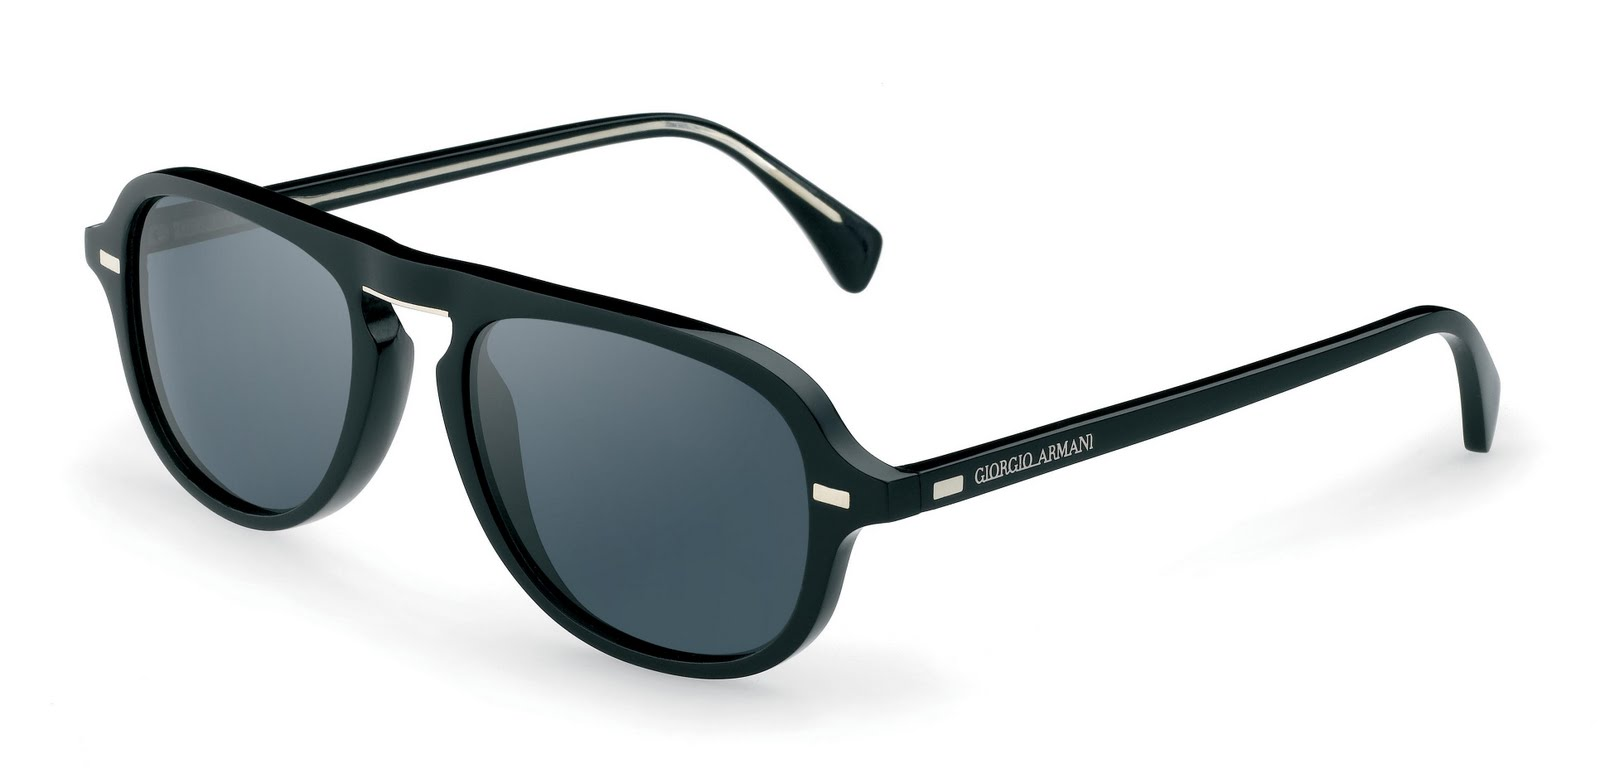 Giorgio Armani FW2010.11 Sunglasses Collection